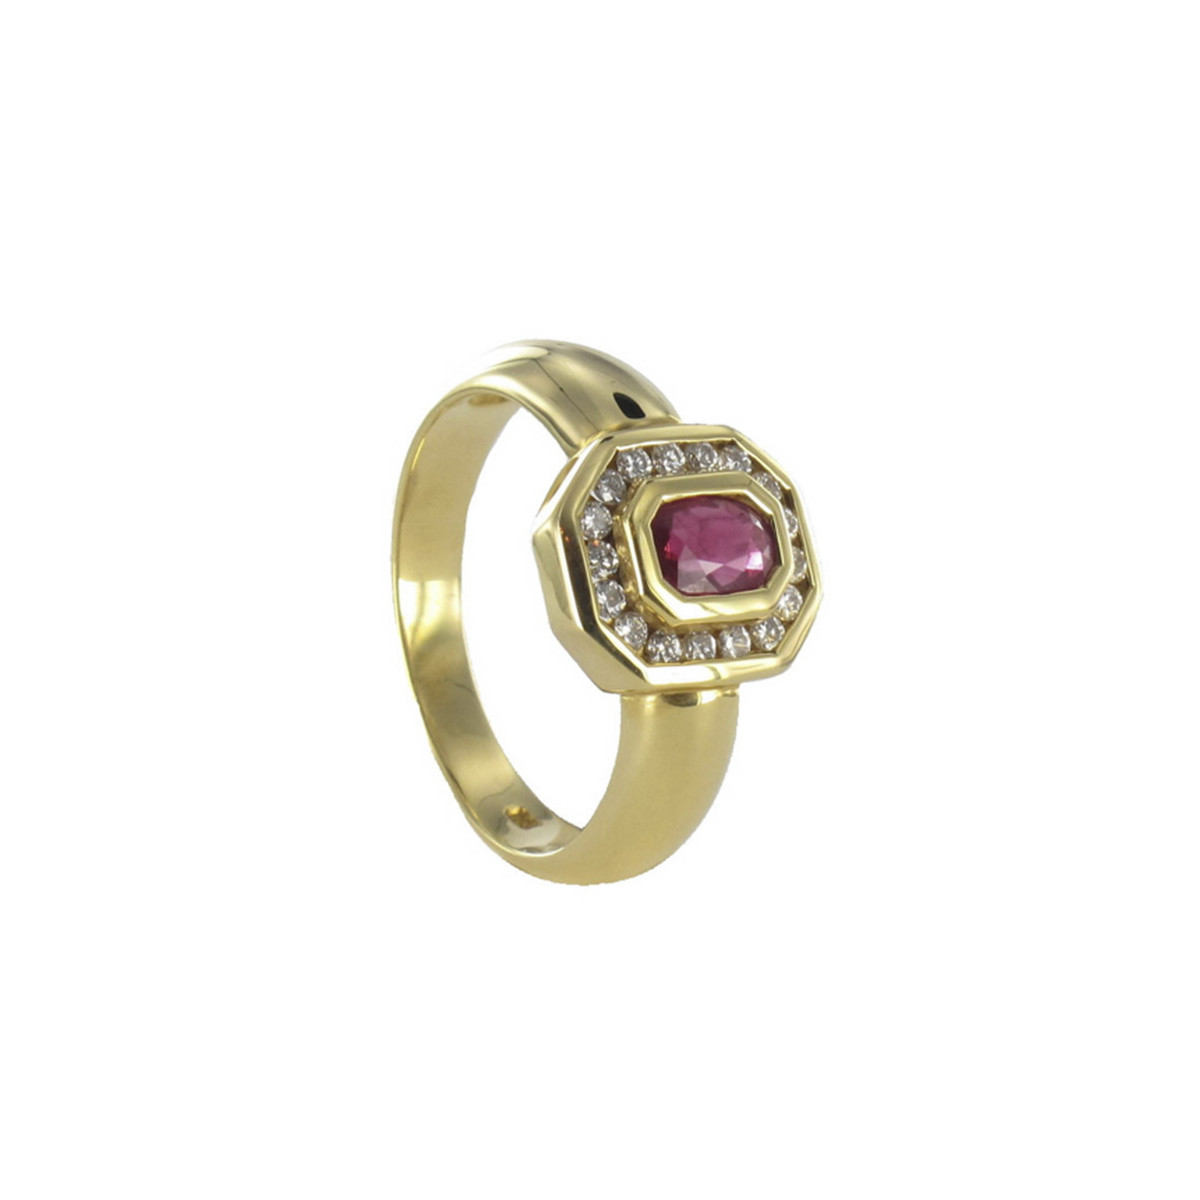 GOLD RUBY AND DIAMONDS RING